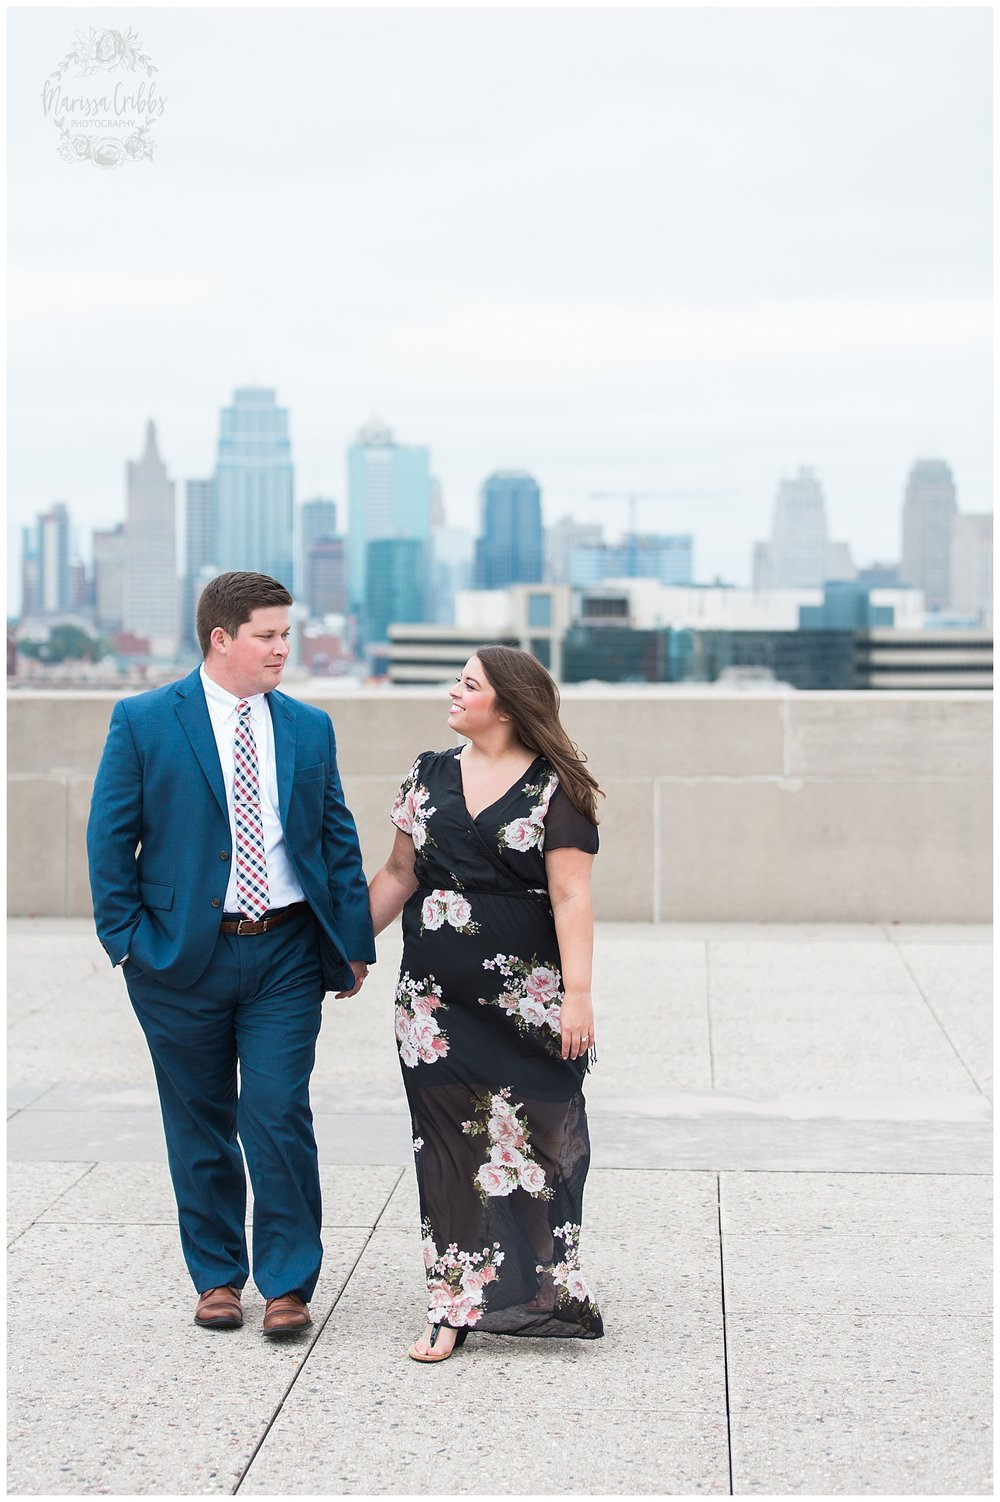 ANDREA & MICHAEL ENGAGEMENT | LIBERTY MEMORIAL ENGAGEMENT PHOTOGRAPHY | MARISSA CRIBBS PHOTOGRAPHY_3029.jpg